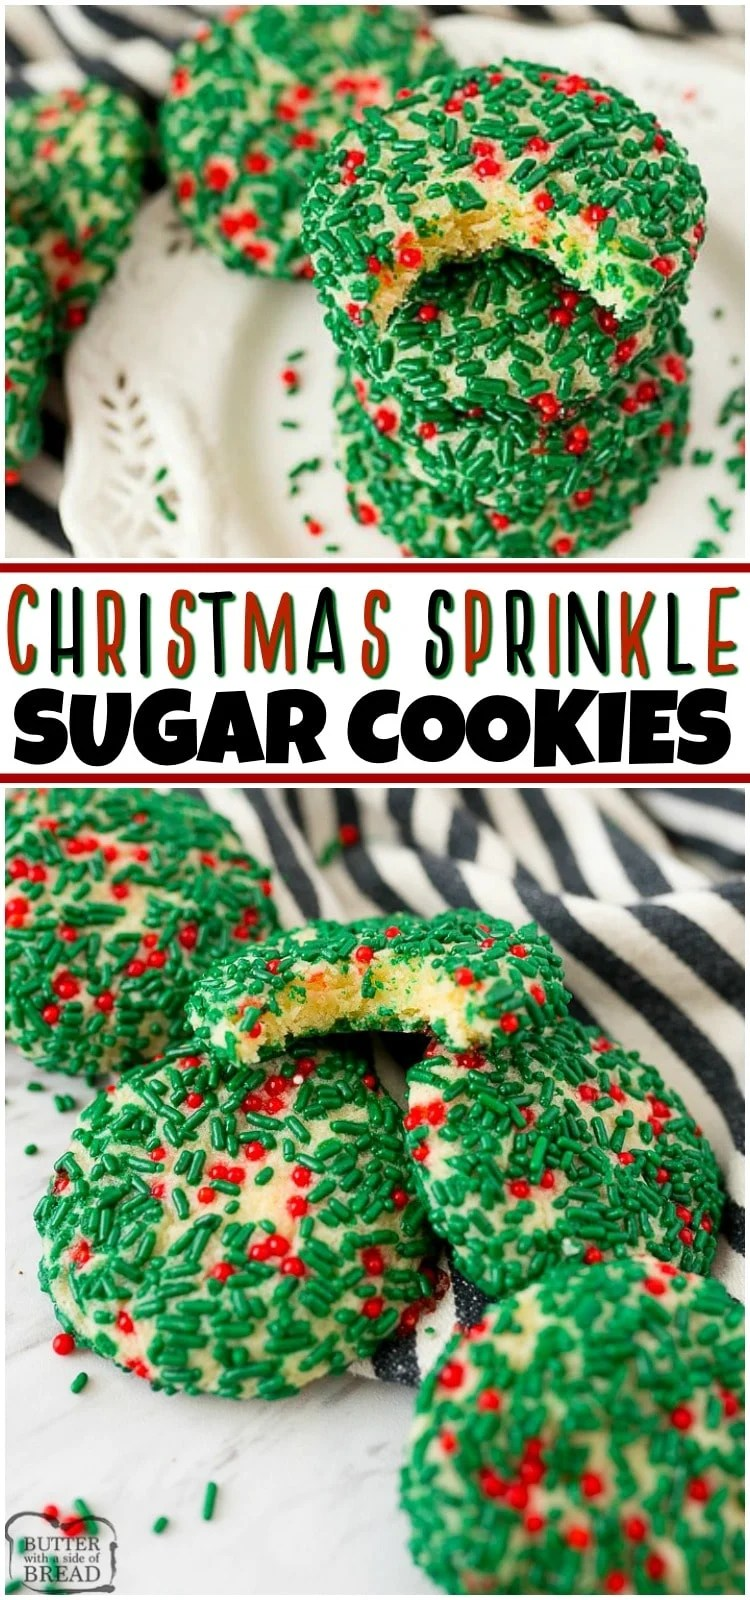 Christmas Sprinkle Cookies are a soft and chewy vanilla sugar cookie covered with red and green sprinkles. Just like the sprinkle cookies made at a bakery, these Christmas Cookies are deliciously festive!